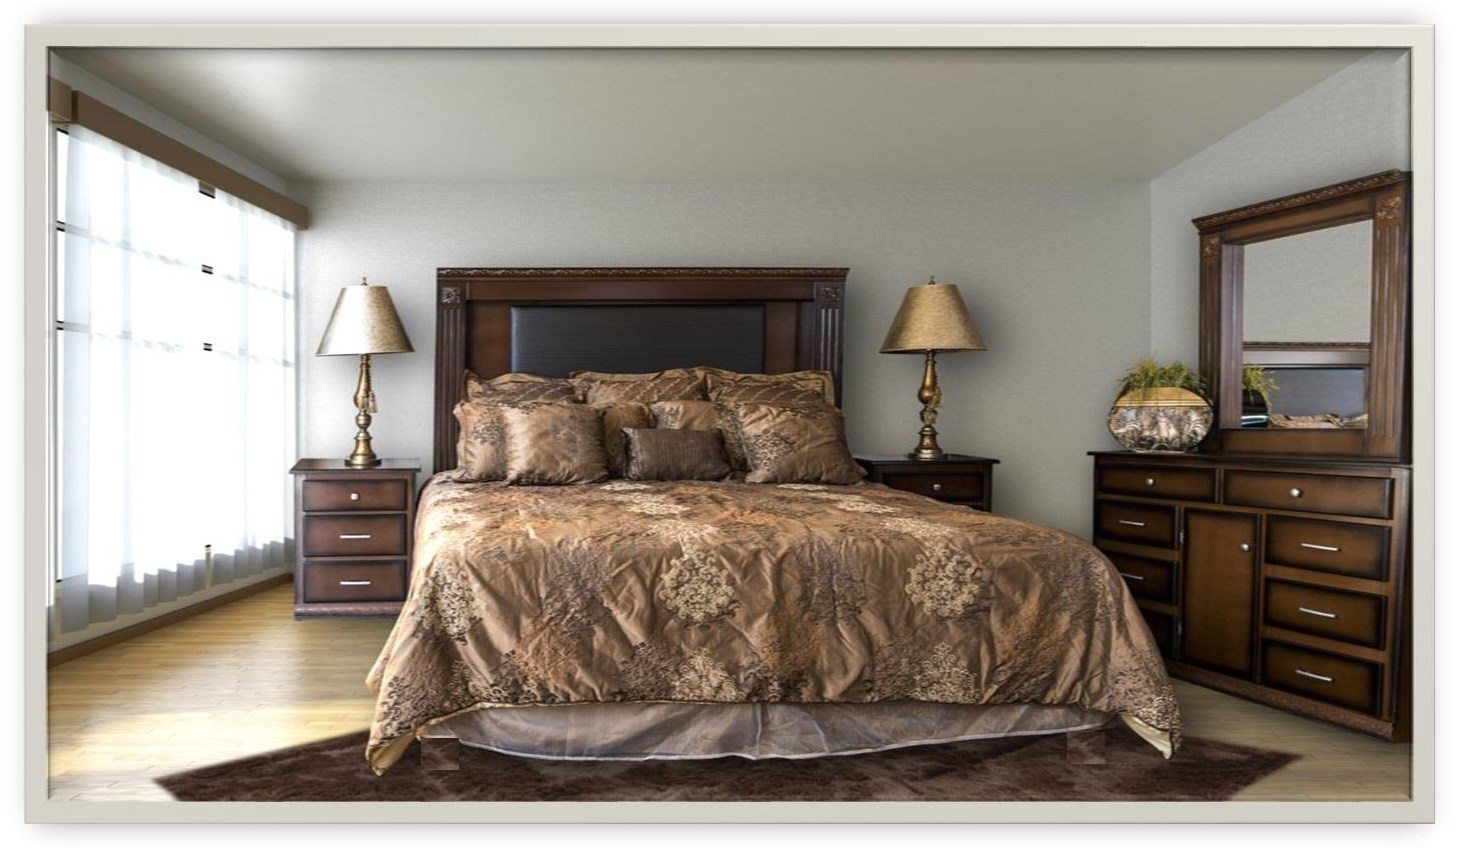 MALAGA MALAGA 5pc Bedroom Group by Phoenix Custom Furniture at Del Sol Furniture